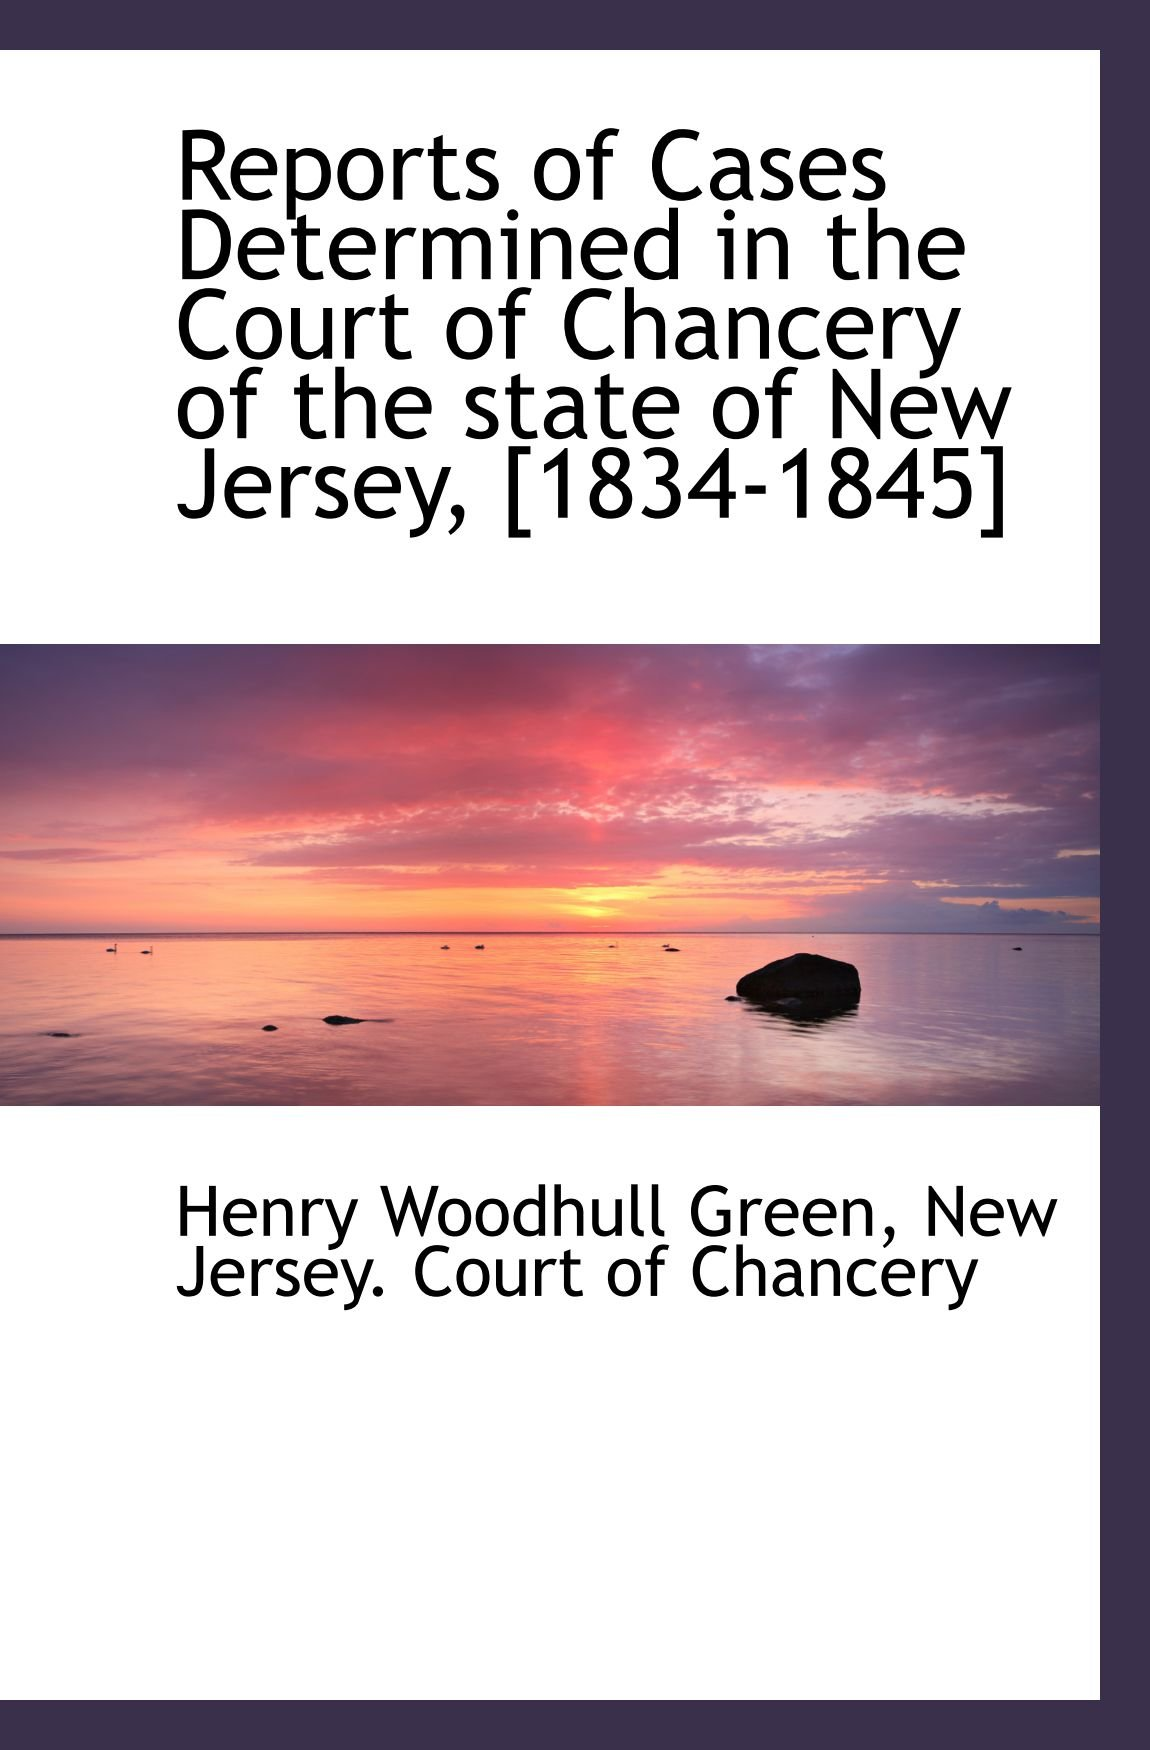 Reports of Cases Determined in the Court of Chancery of the state of New Jersey, [1834-1845] PDF